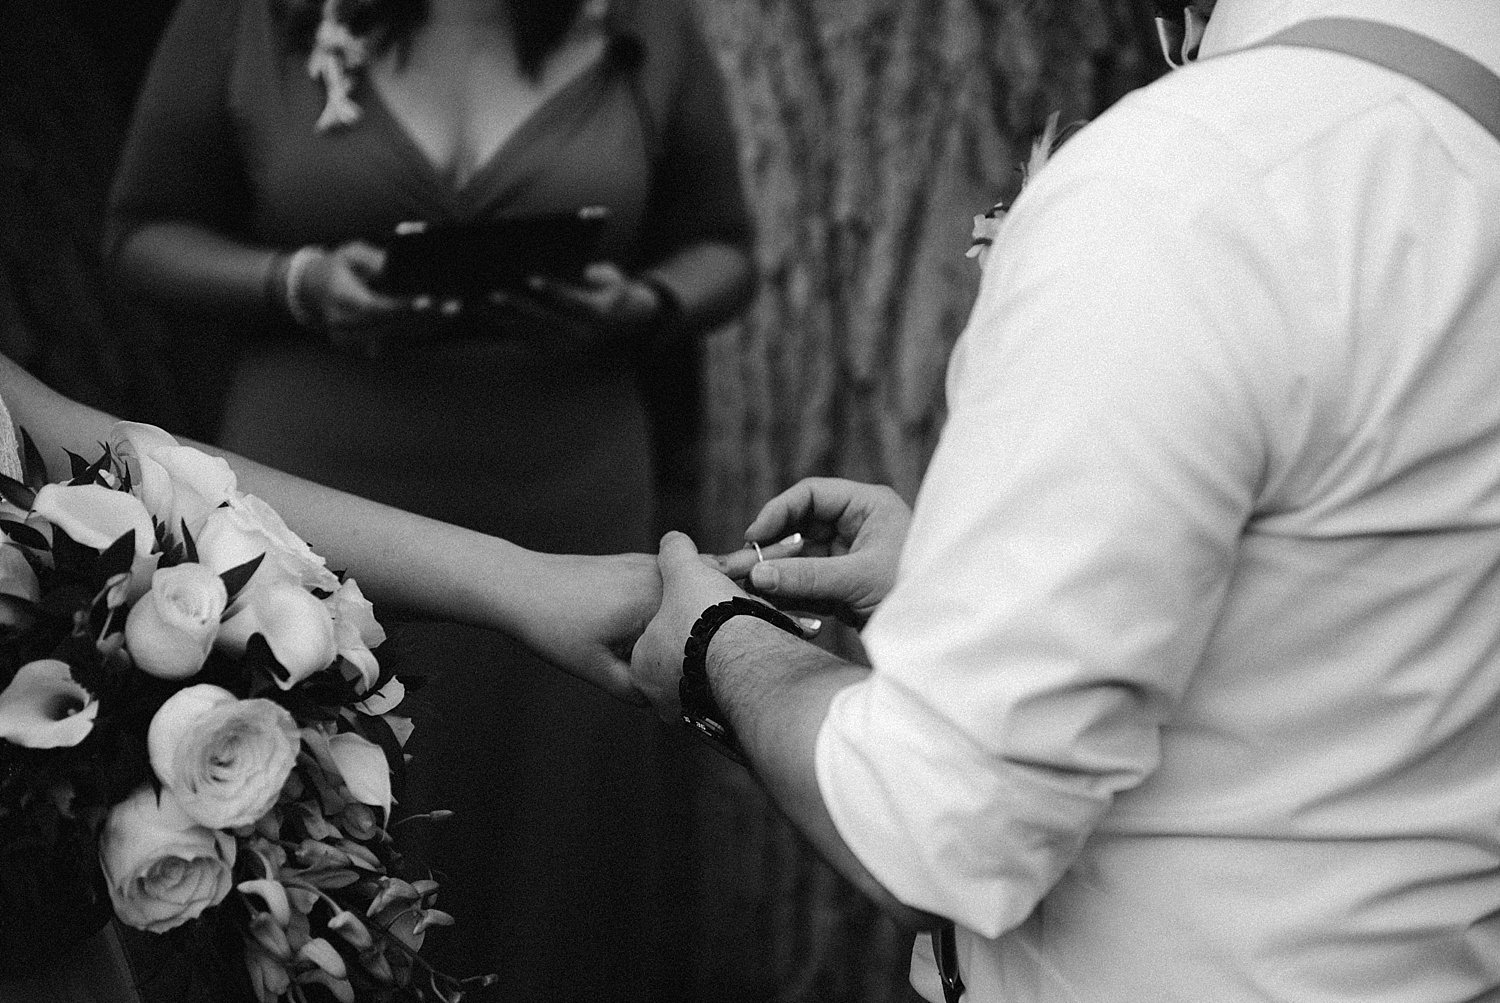 groom putting the ring on the bride